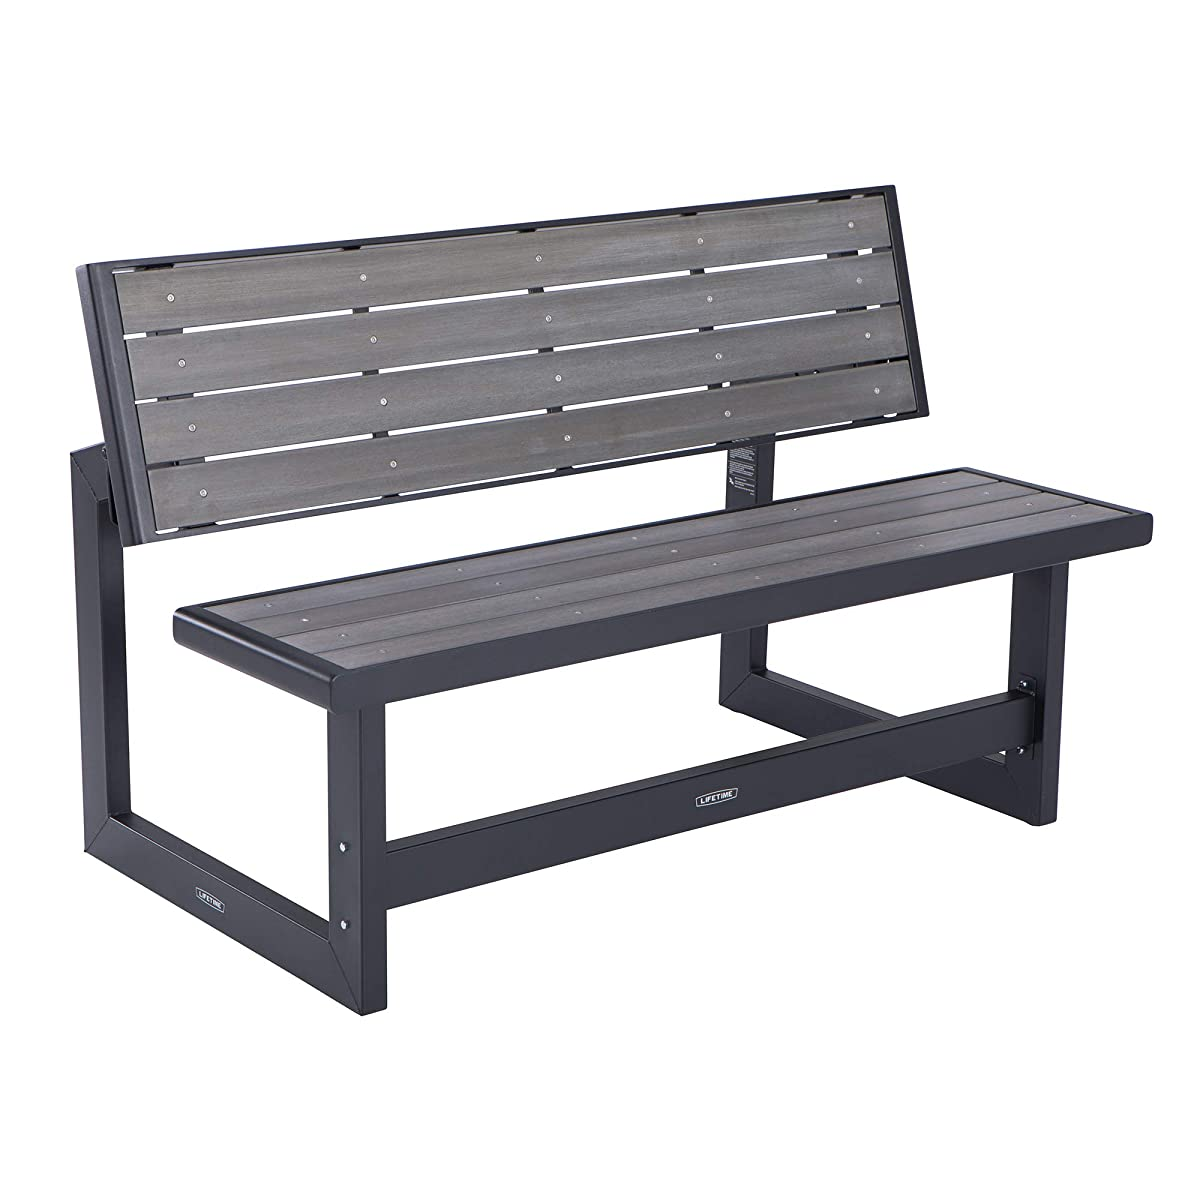 Lifetime 60253 Convertible Bench, Harbor Gray